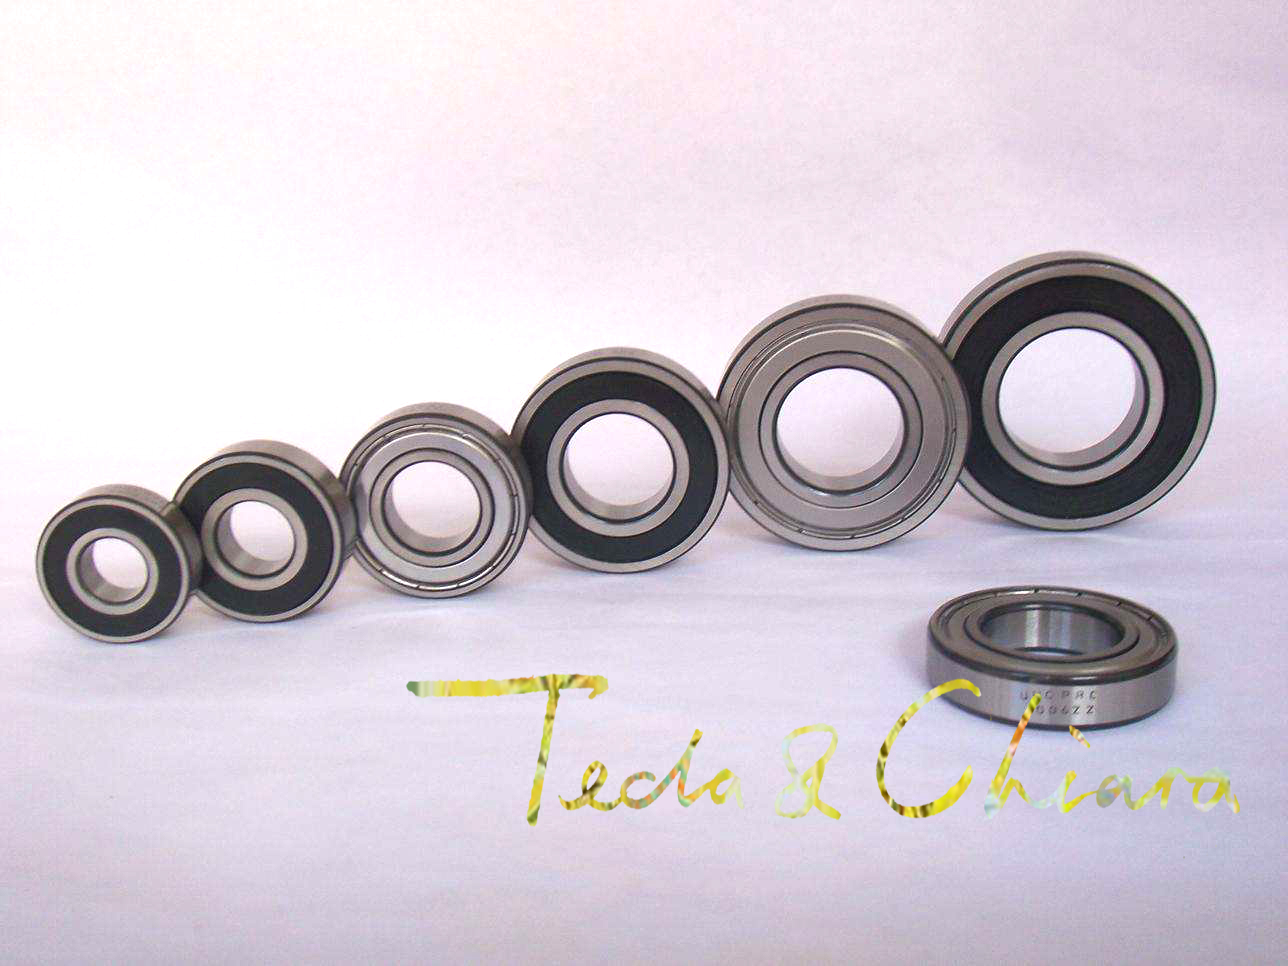 MR104 MR104ZZ MR104RS MR104-2Z MR104Z MR104-2RS ZZ RS RZ 2RZ Deep Groove Ball Bearings 4 X 10 X 4mm